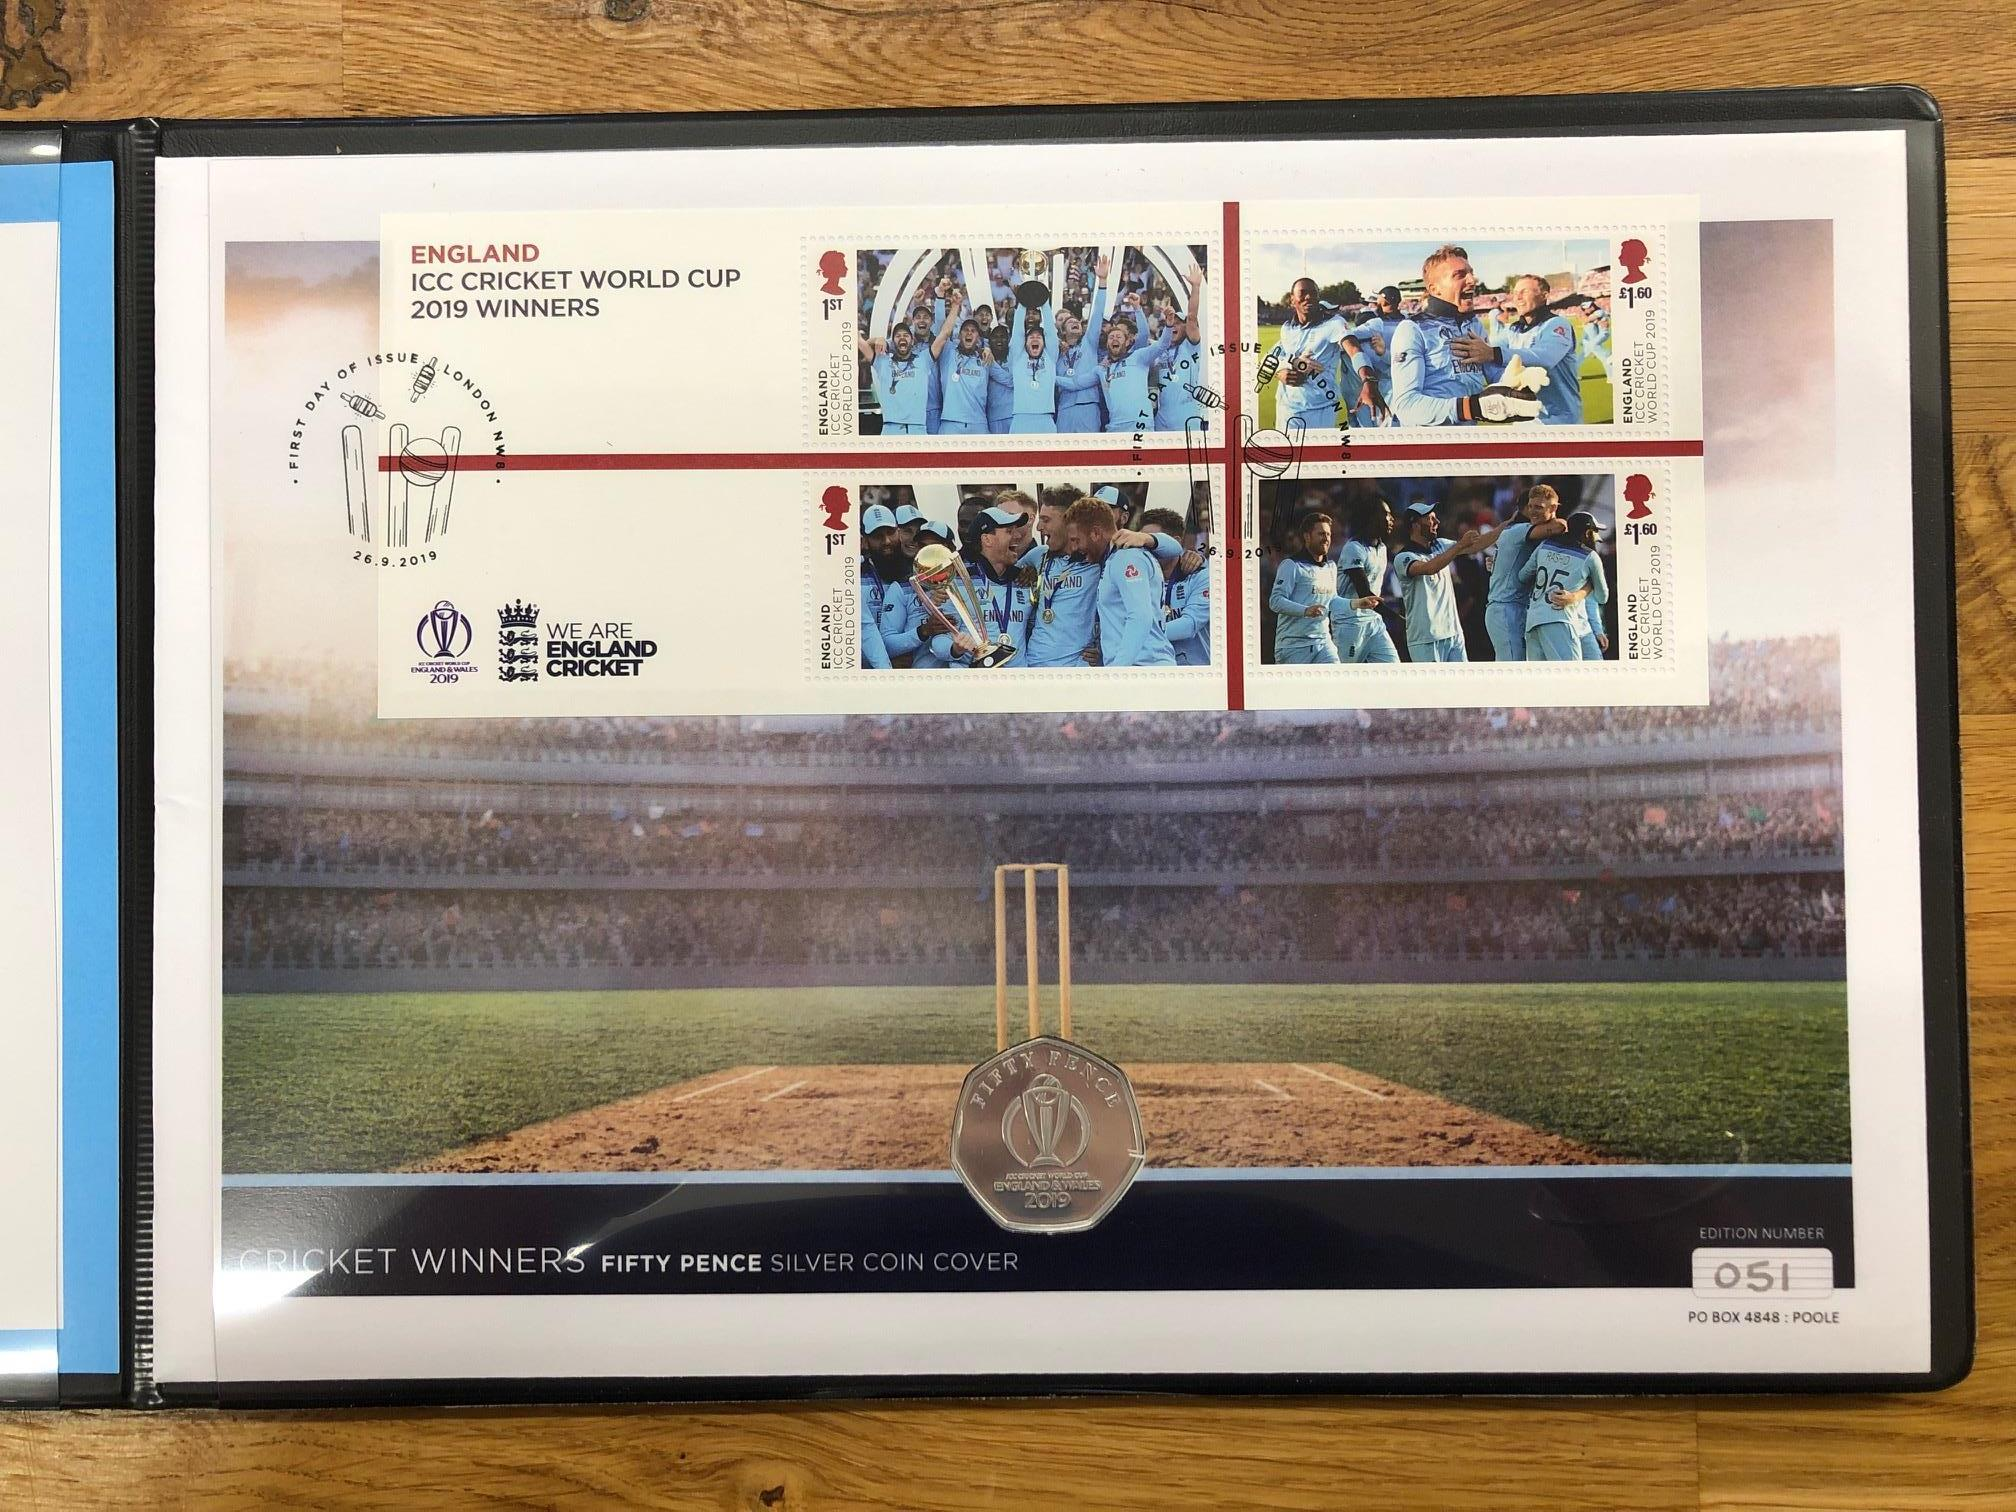 COIN COVERS 2019 Cricket Winners 50p silver in special folder.